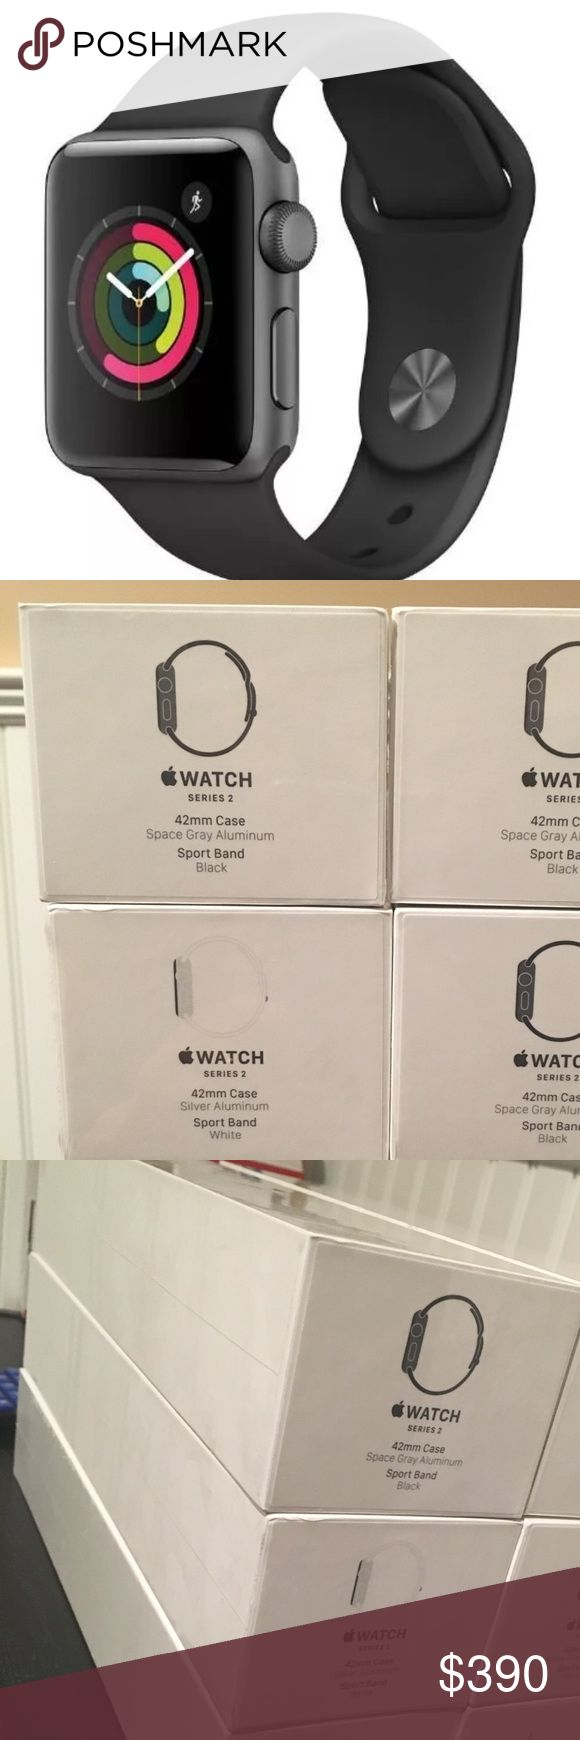 New Apple Watch 42mm Series 2 Space Grey in Box New Apple Watch Space Grey 42mm Gen.2 Series 2 never opened sealed package. Comes with Black sport band. Get a brand new Apple Watch in Sealed Box, i ship fast and secure trusted seller with more than 300 complete transactions here in Posnhmark. The last generation of Apple watch comes with new features like gps, waterproof, brighter screen and more. Also i offer bands for these watches to update look and elegance. Thank you and please no…